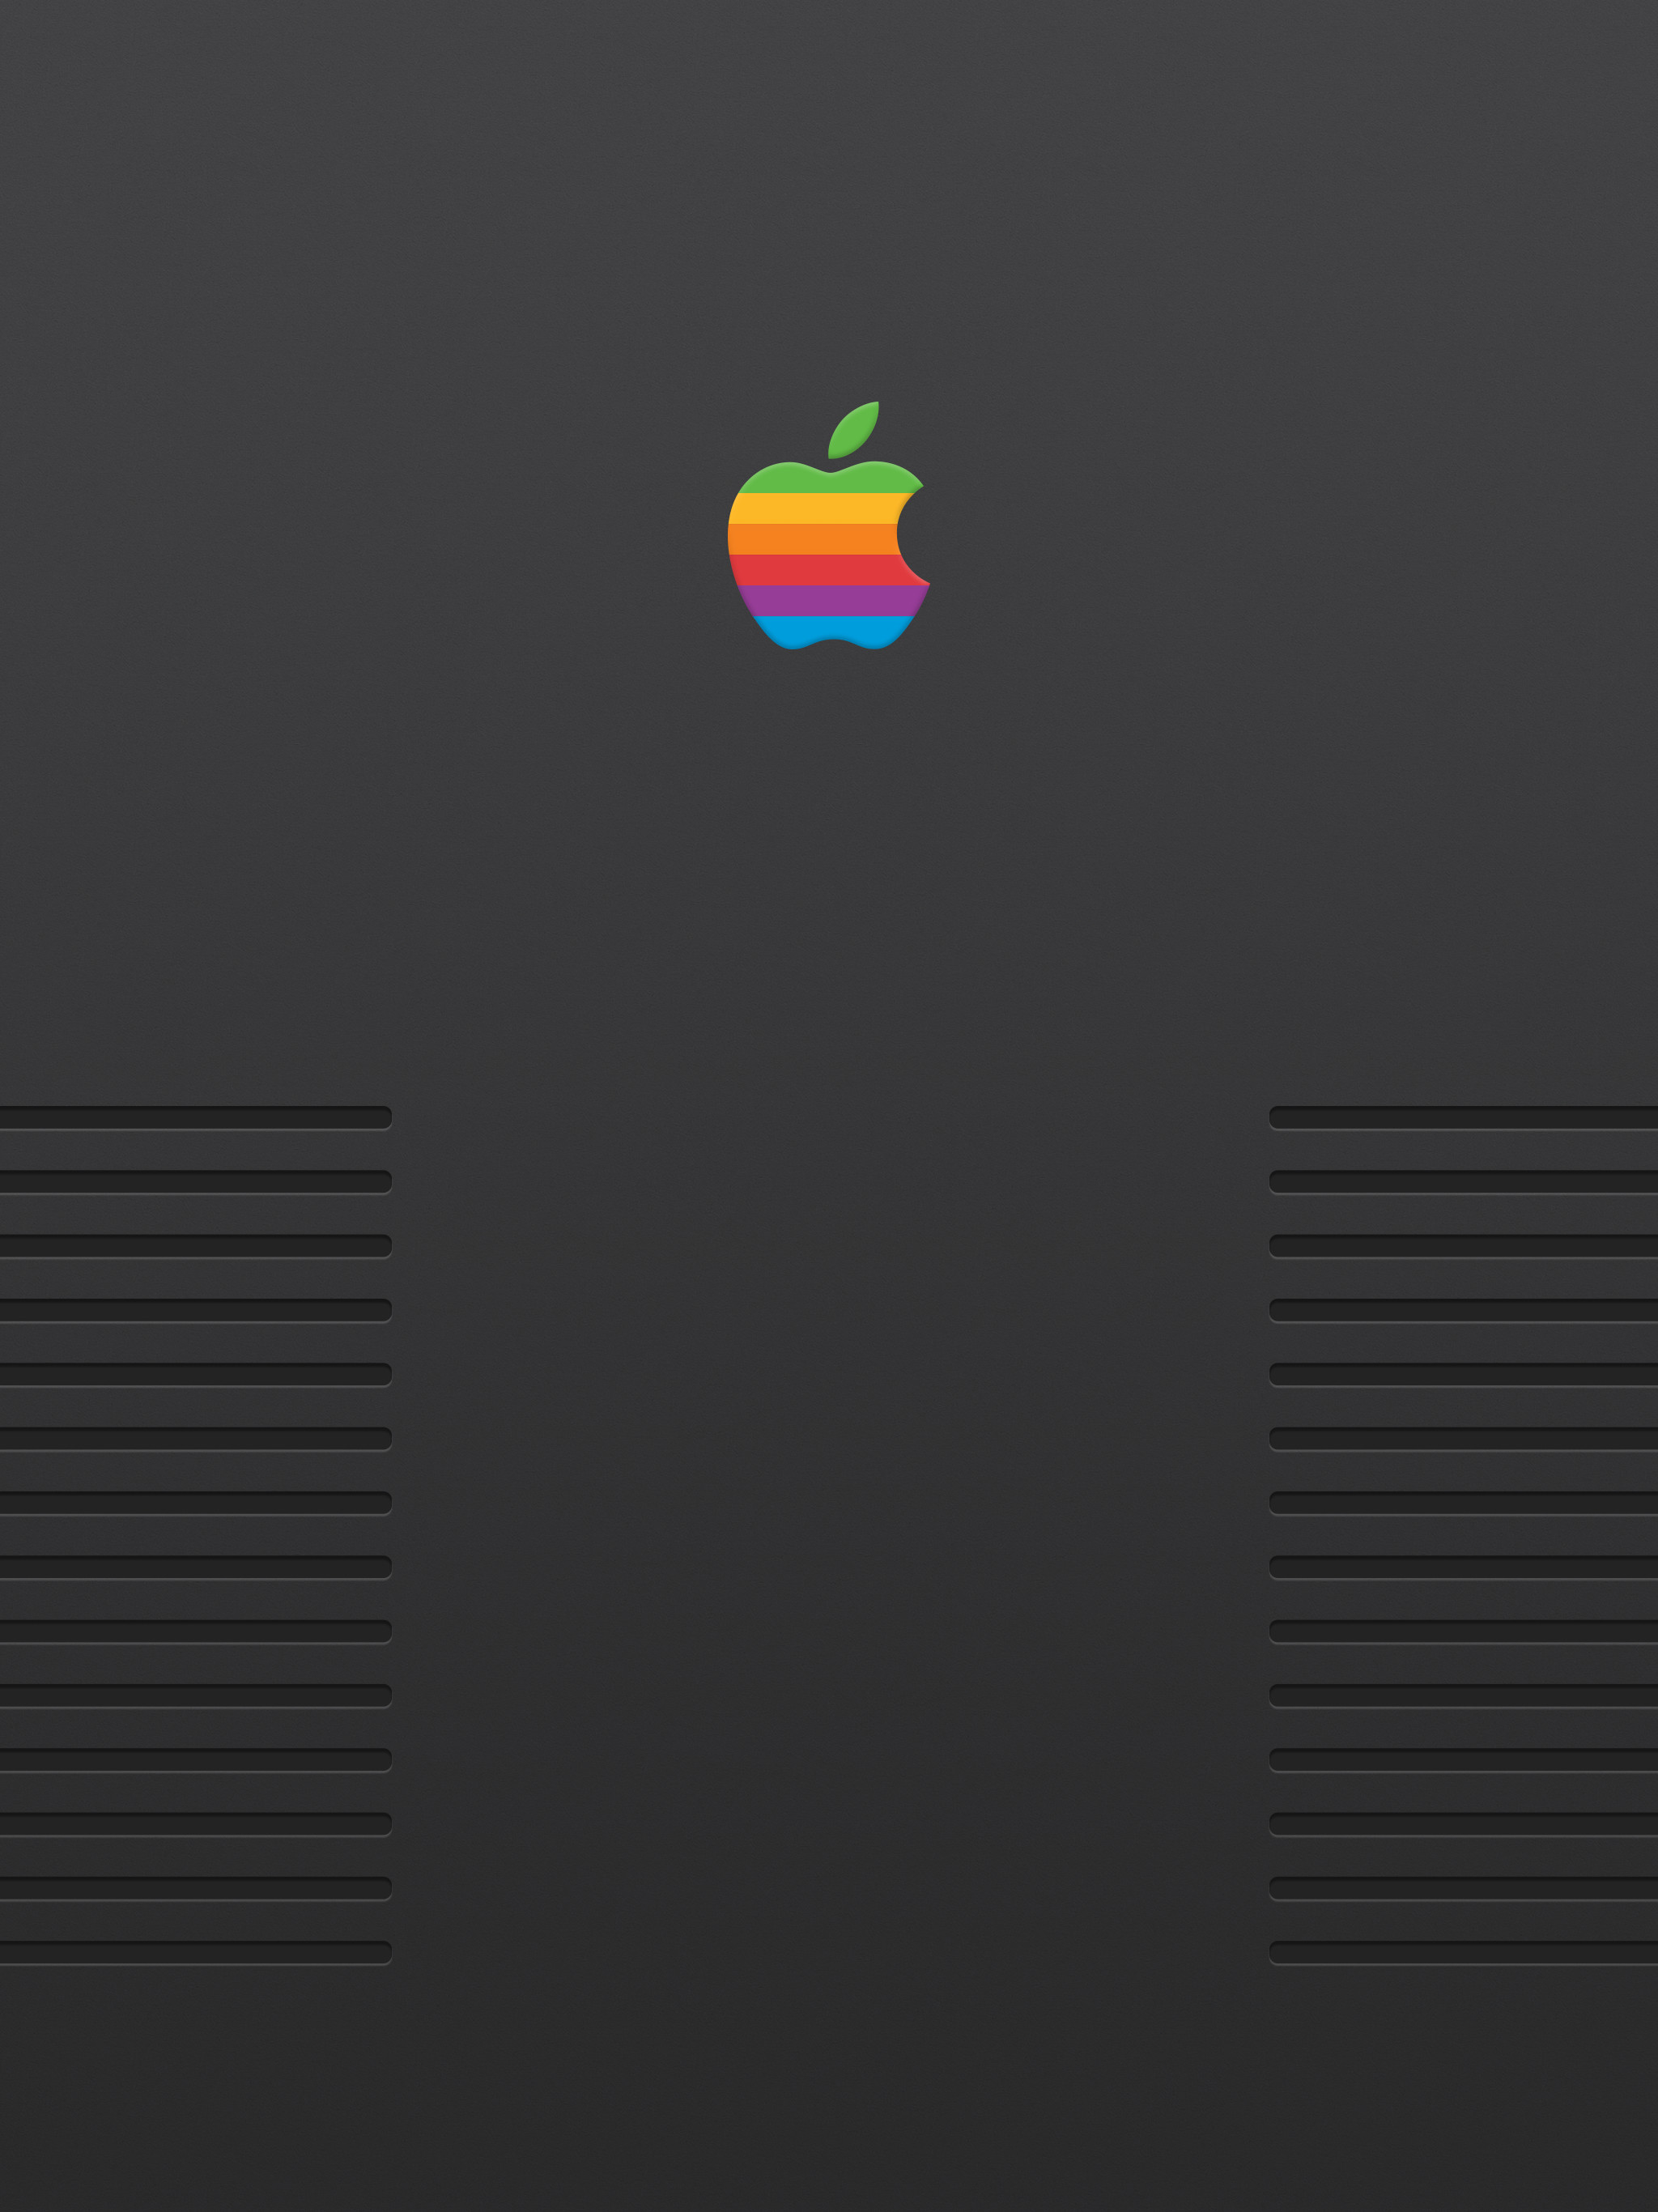 2048x2732 Wallpaper Weekends: Retro Apple for iPhone, iPad, Mac, and Apple Watch